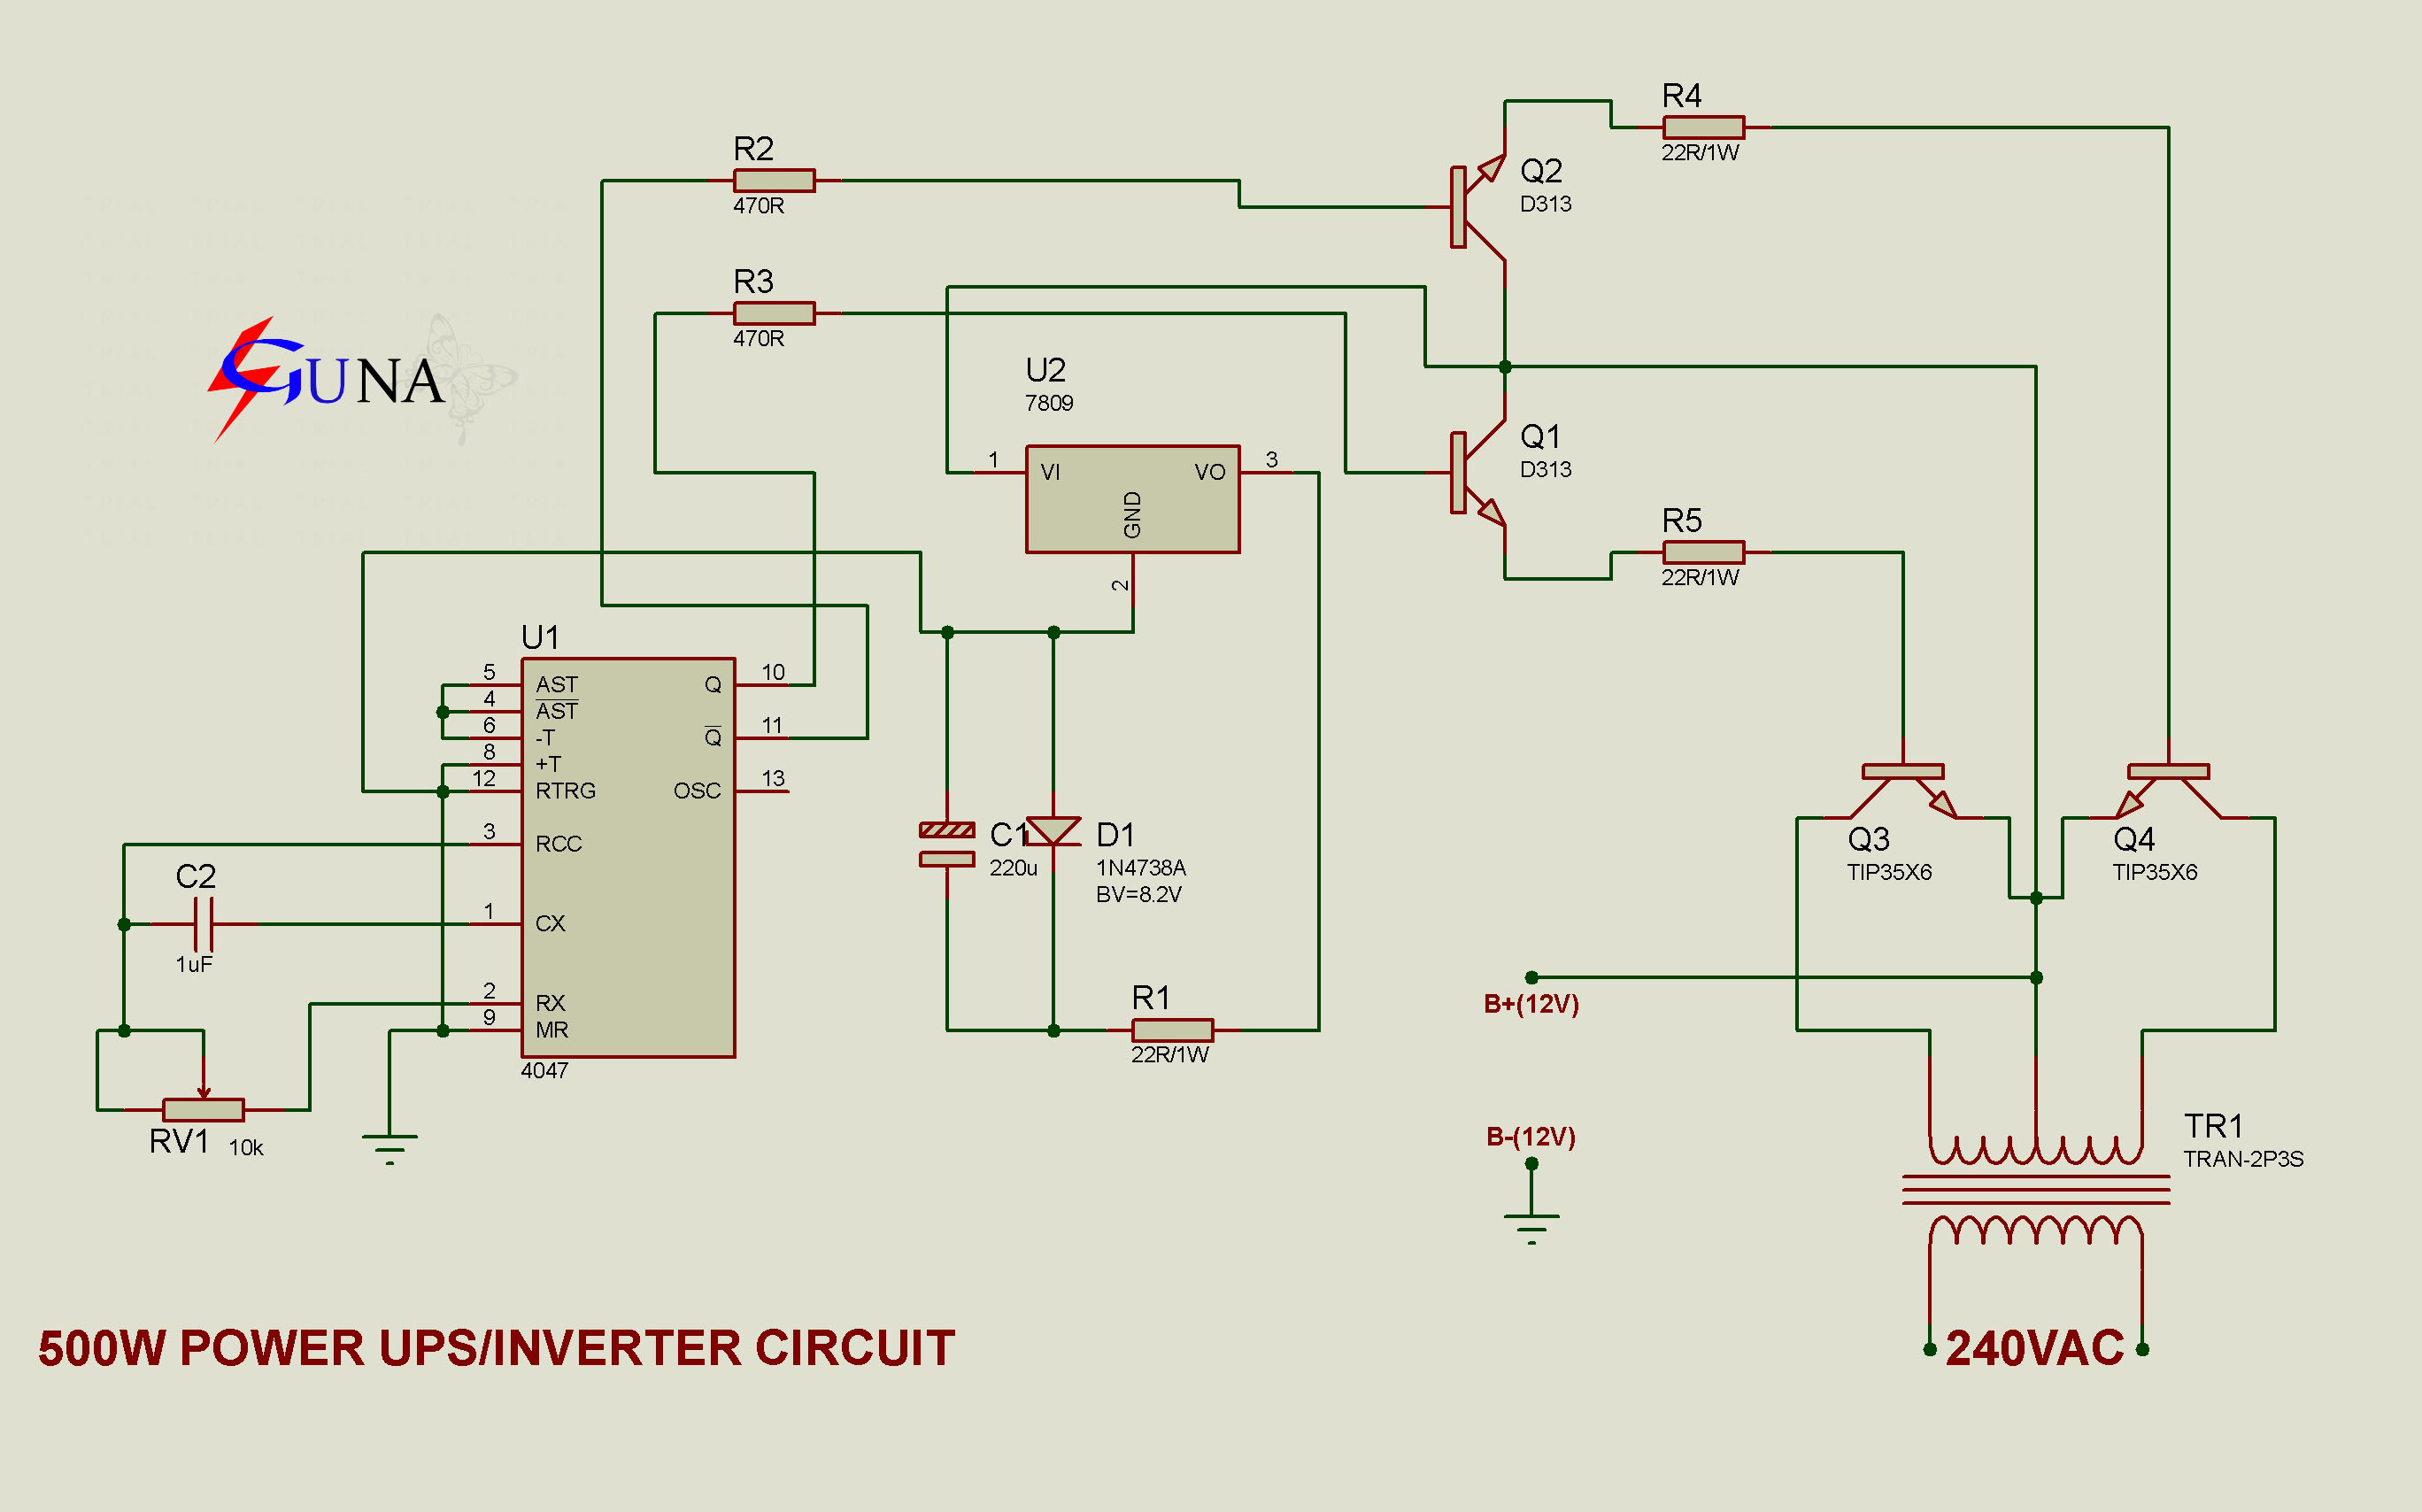 Gunacircuits 500w Inverter Circuit Diagram This Is The Power Converting A 12vdc Battery Usually Car To Become 220 240v Ac Powered Using 6 Pairs